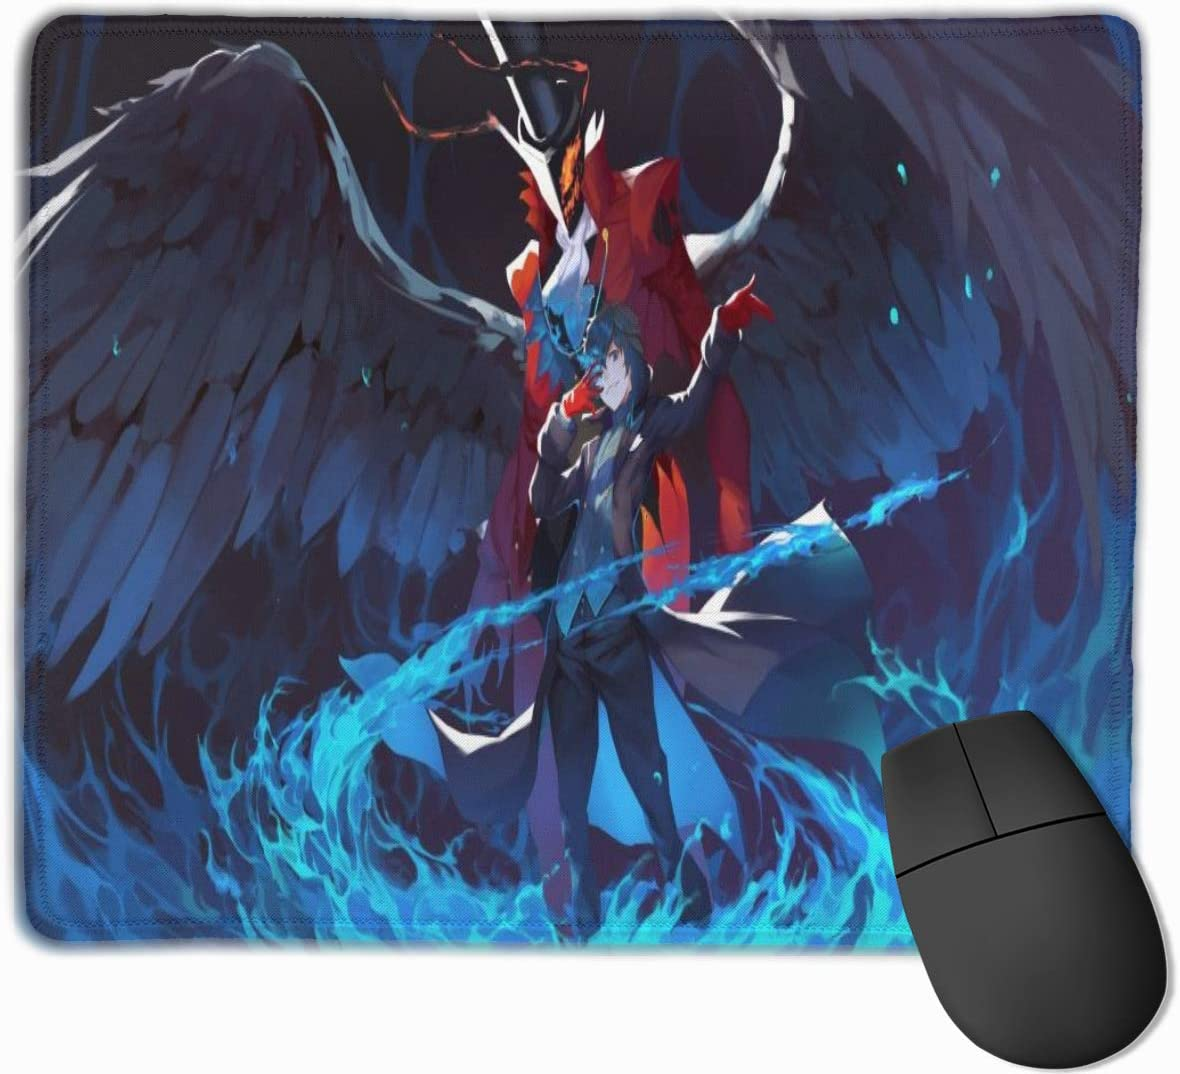 Rectangular Non-Slip Rubber Mouse Pad 10 X 12 Inches Rubber Base for Office and Home Use Computer Desk Pad Persona 5 Gaming Mouse Pad Non-Slip Mouse Pad Computer Mouse Pad with Seam Edge